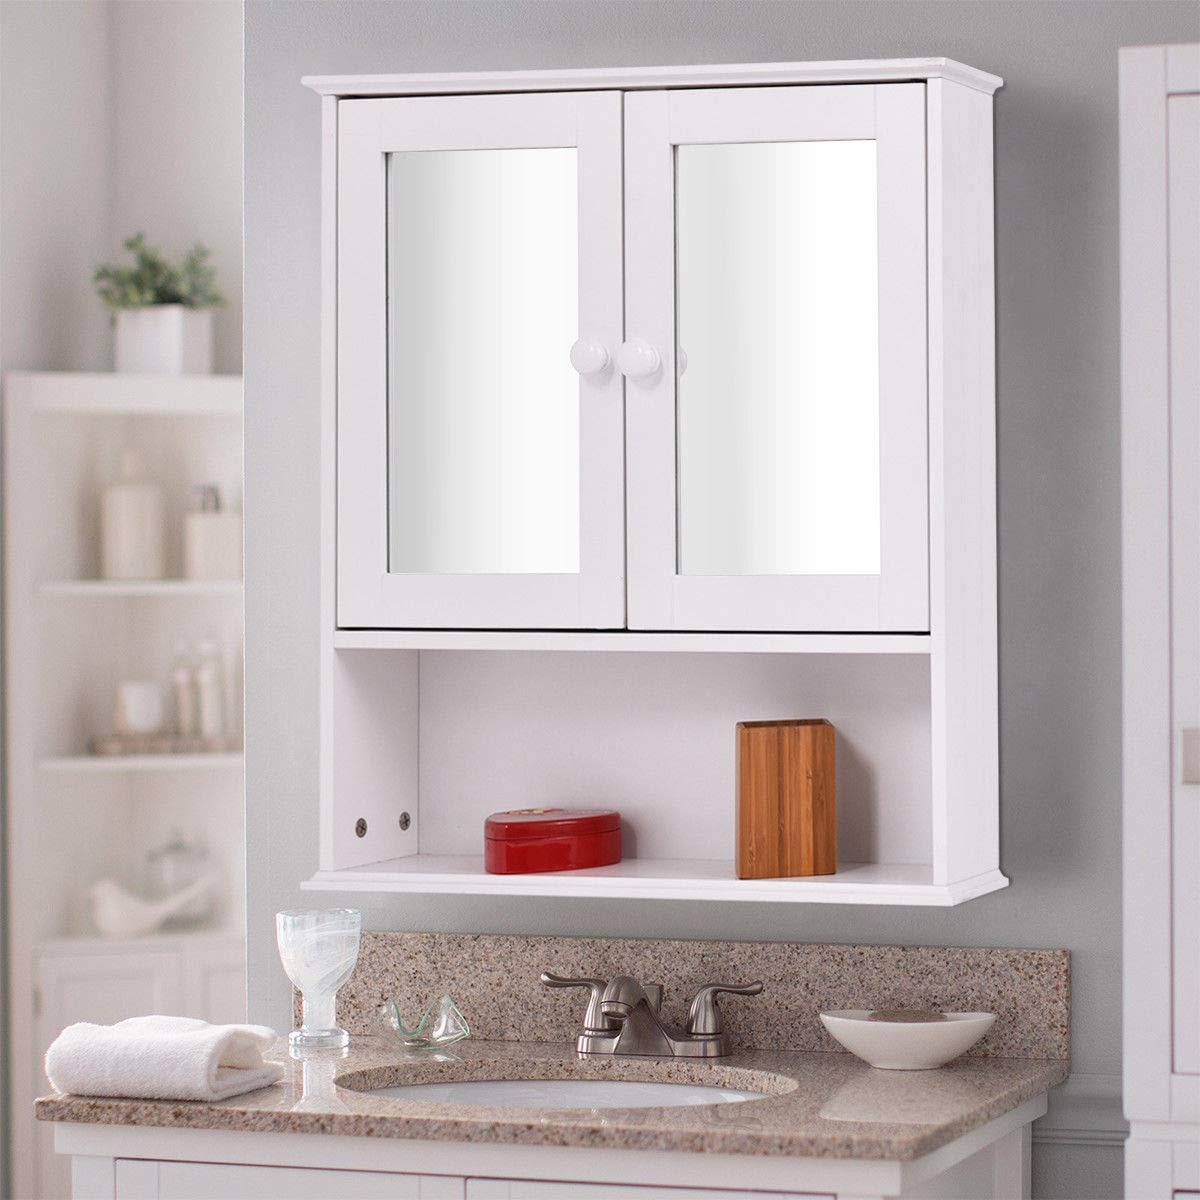 Amazon.com: TANGKULA Bathroom Cabinet Double Mirror Door Wall Mount ...